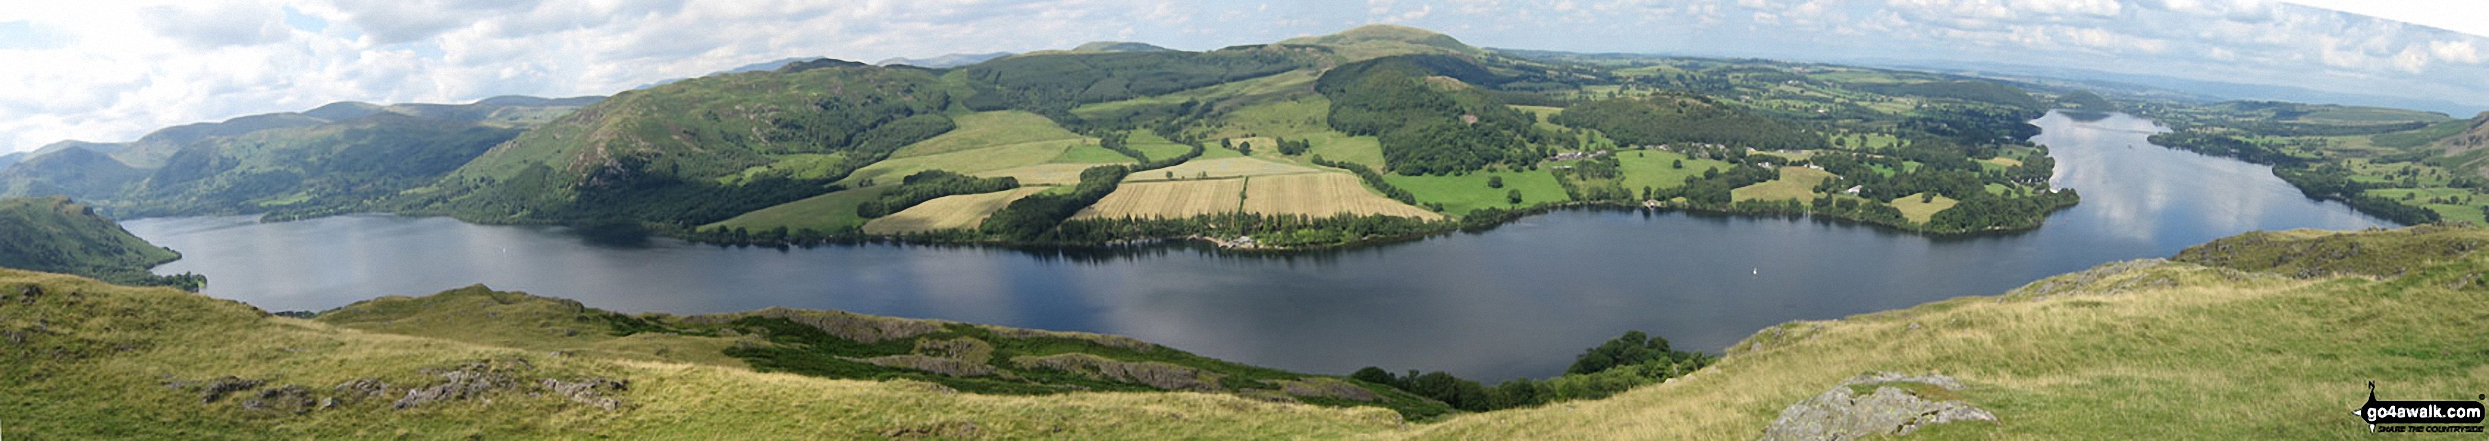 Ullswater featuring Patterdale & Glenridding (left), Gowbarrow Fell (Airy Crag) (centre left), Great Mell Fell (centre), Little Mell Fell (centre right) and Pooley Bridge (right) from Hallin Fell summit